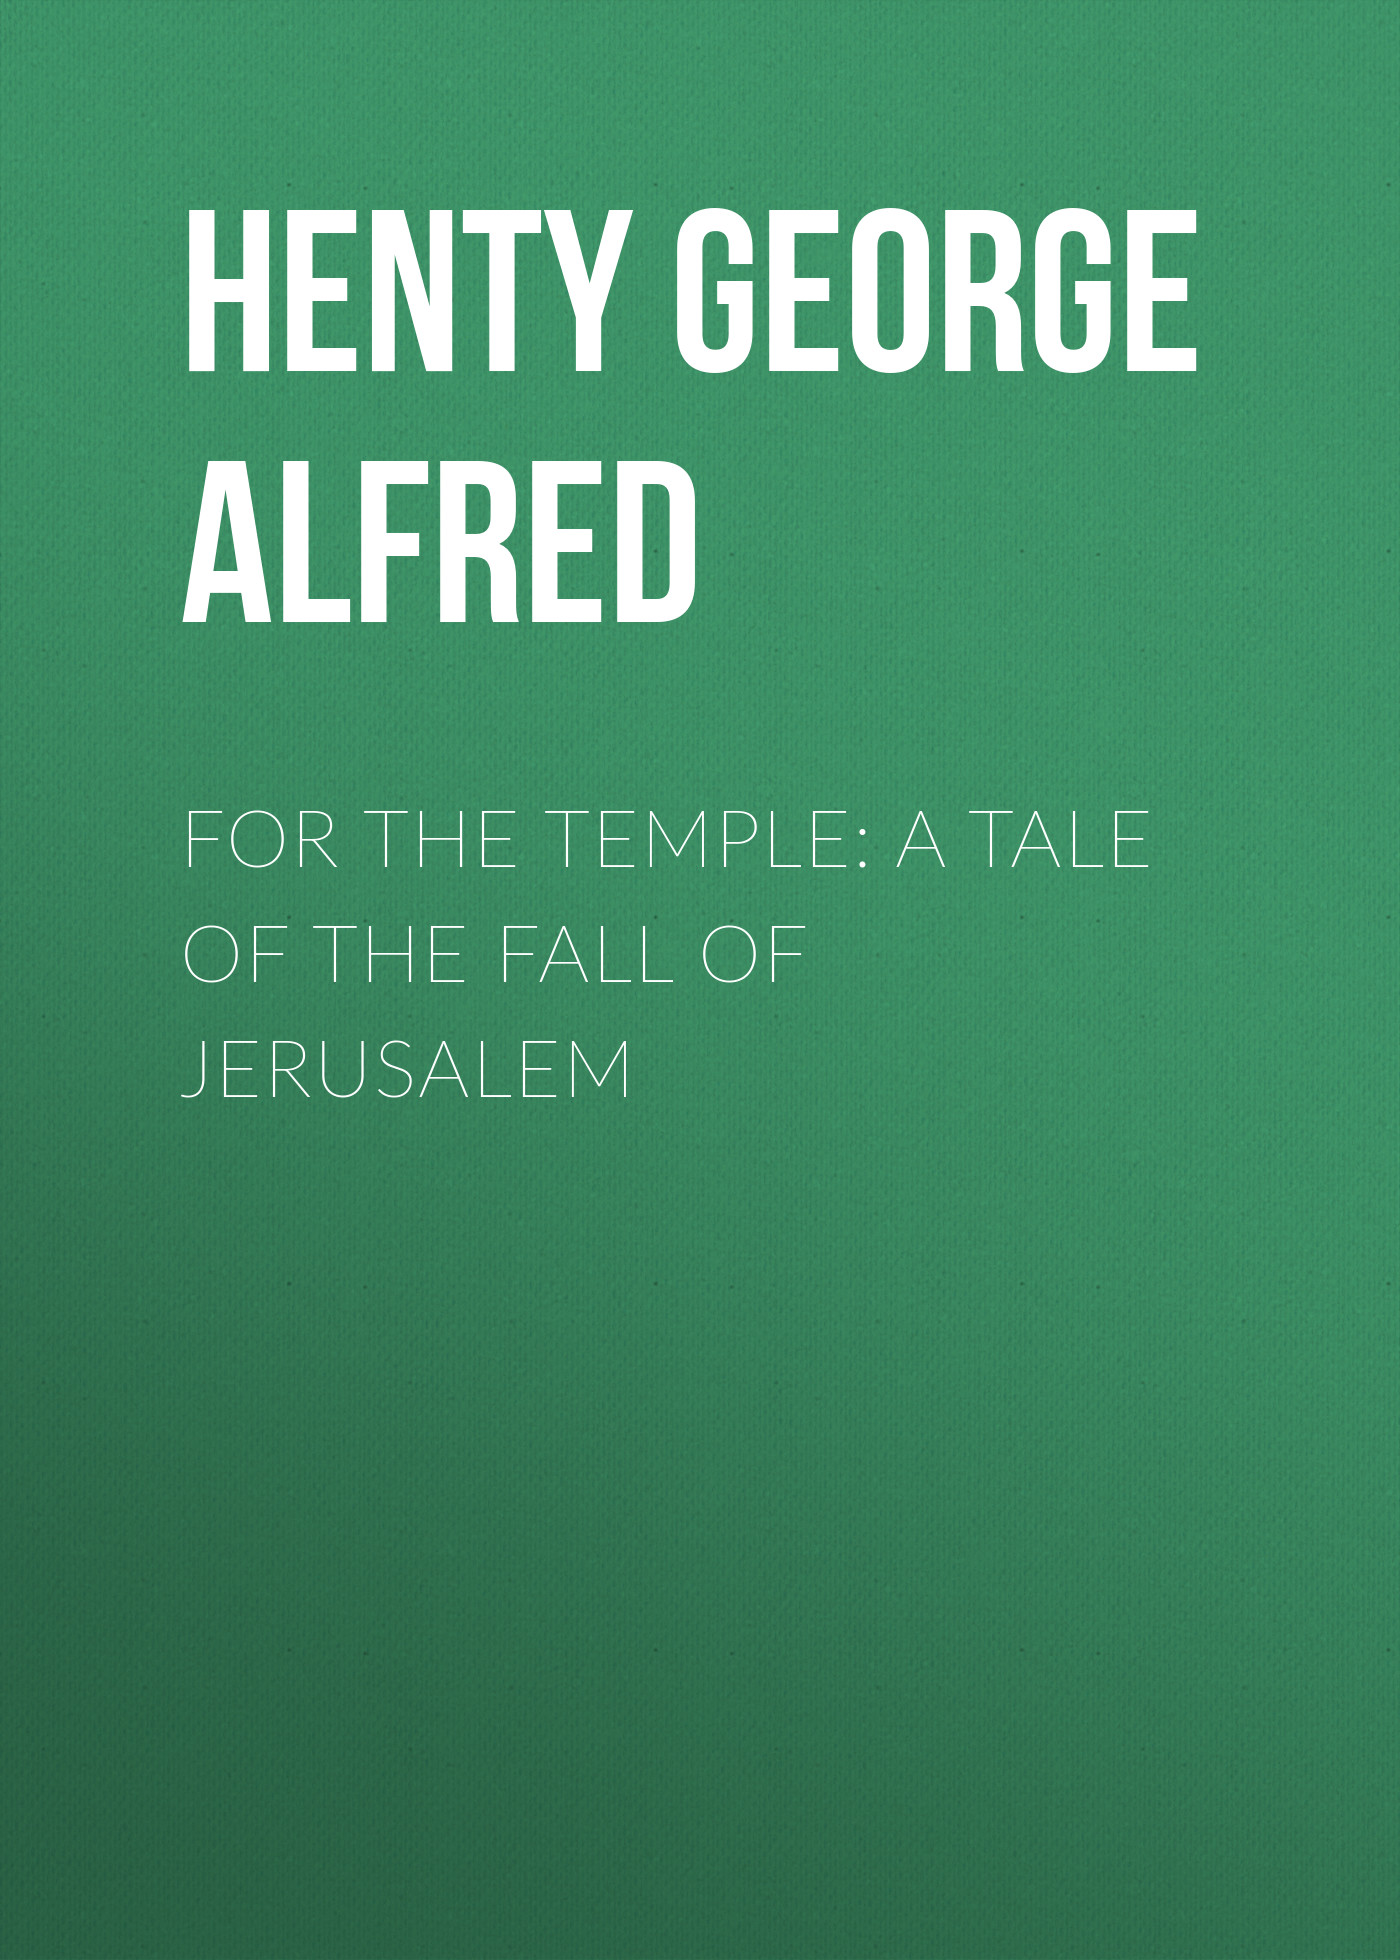 Henty George Alfred For the Temple: A Tale of the Fall of Jerusalem ноутбук apple macbook air 13 late 2018 intel core i5 1600 mhz 13 3 2560x1600 8gb 128gb ssd dvd нет intel uhd graphics 617 wi fi золотой mree2